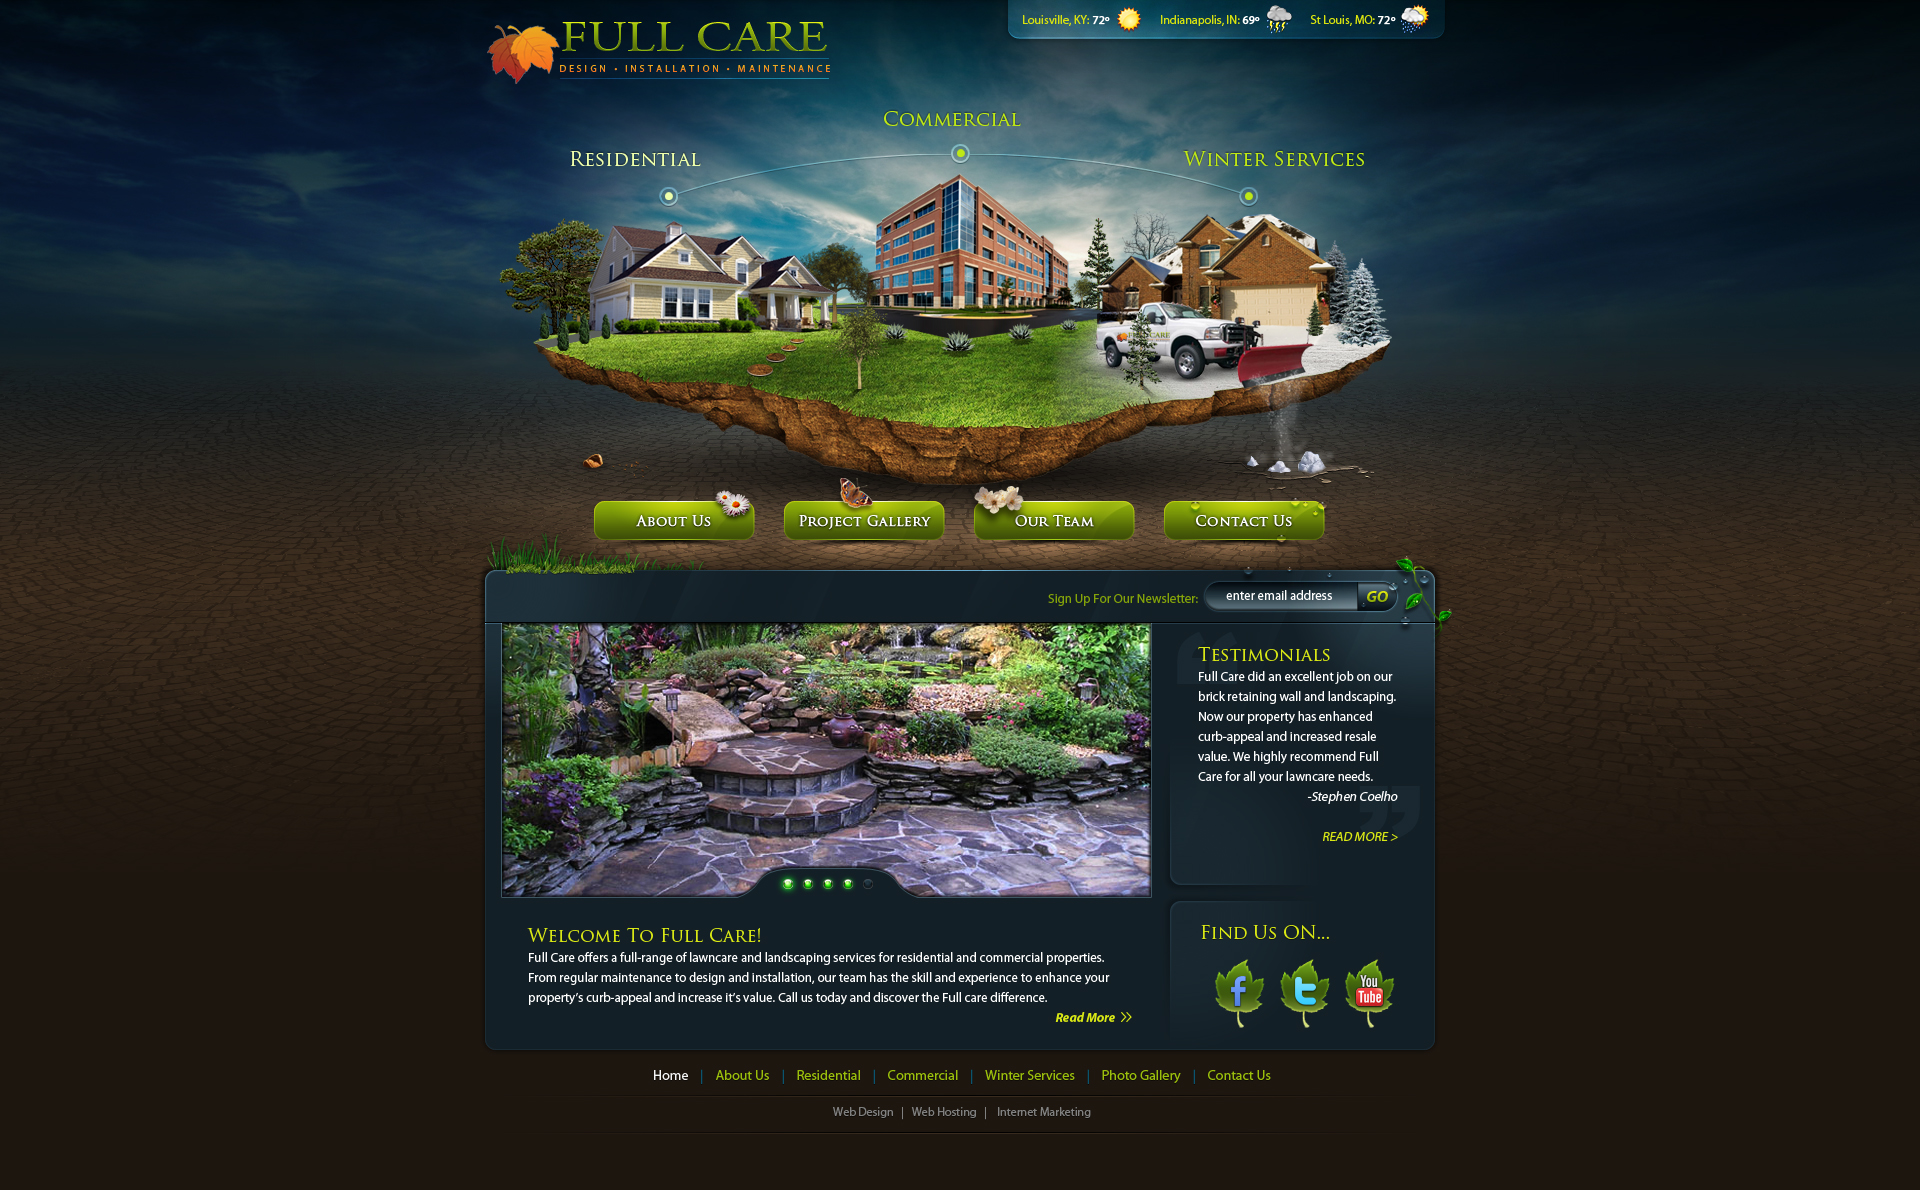 Full Care Lawncare Web Design By Stephen Coelho